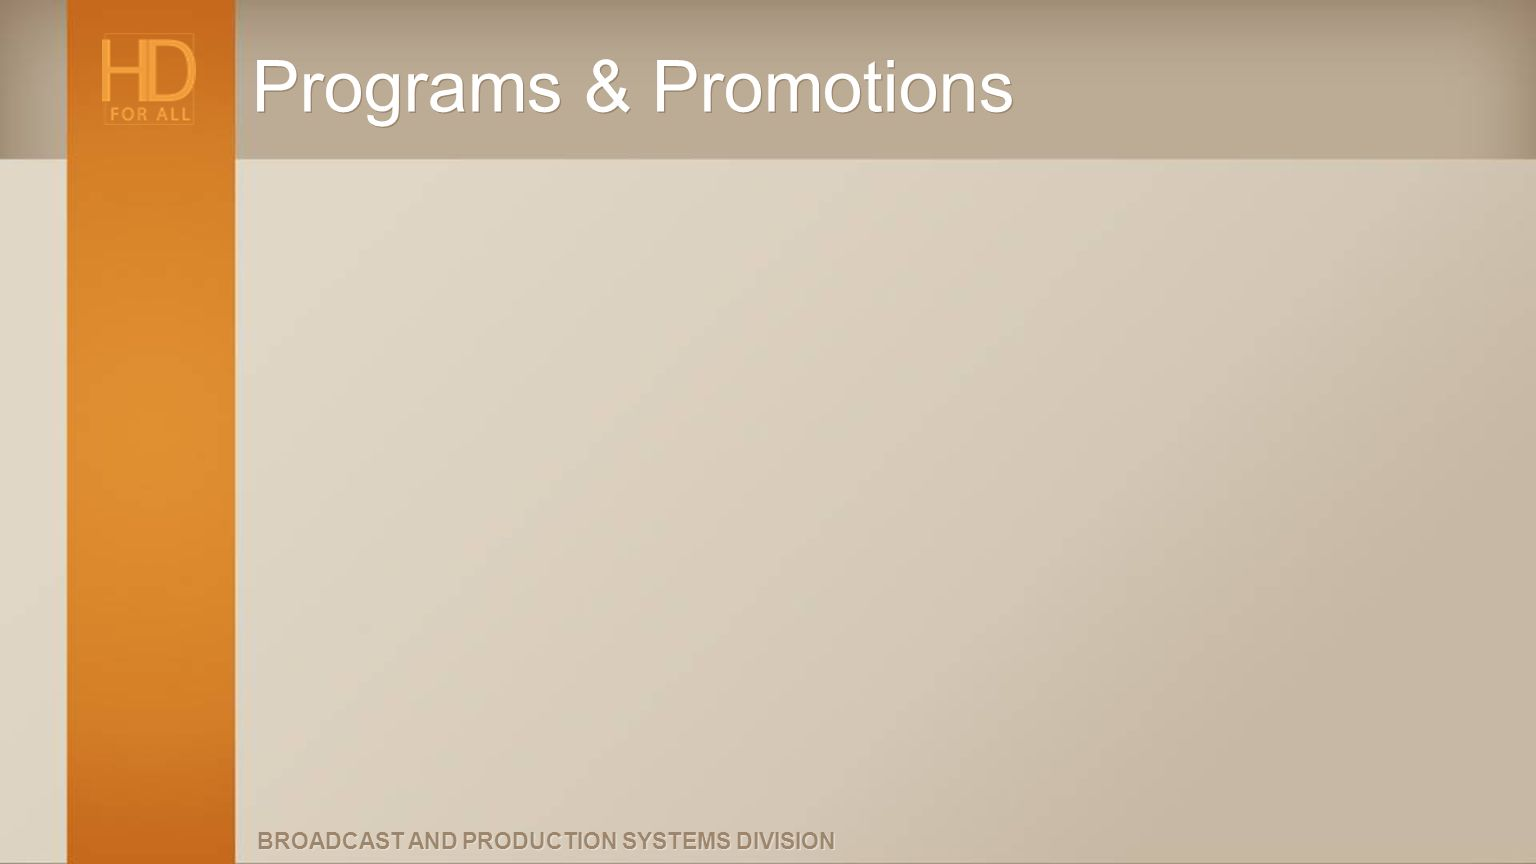 BROADCAST AND PRODUCTION SYSTEMS DIVISION Programs & Promotions